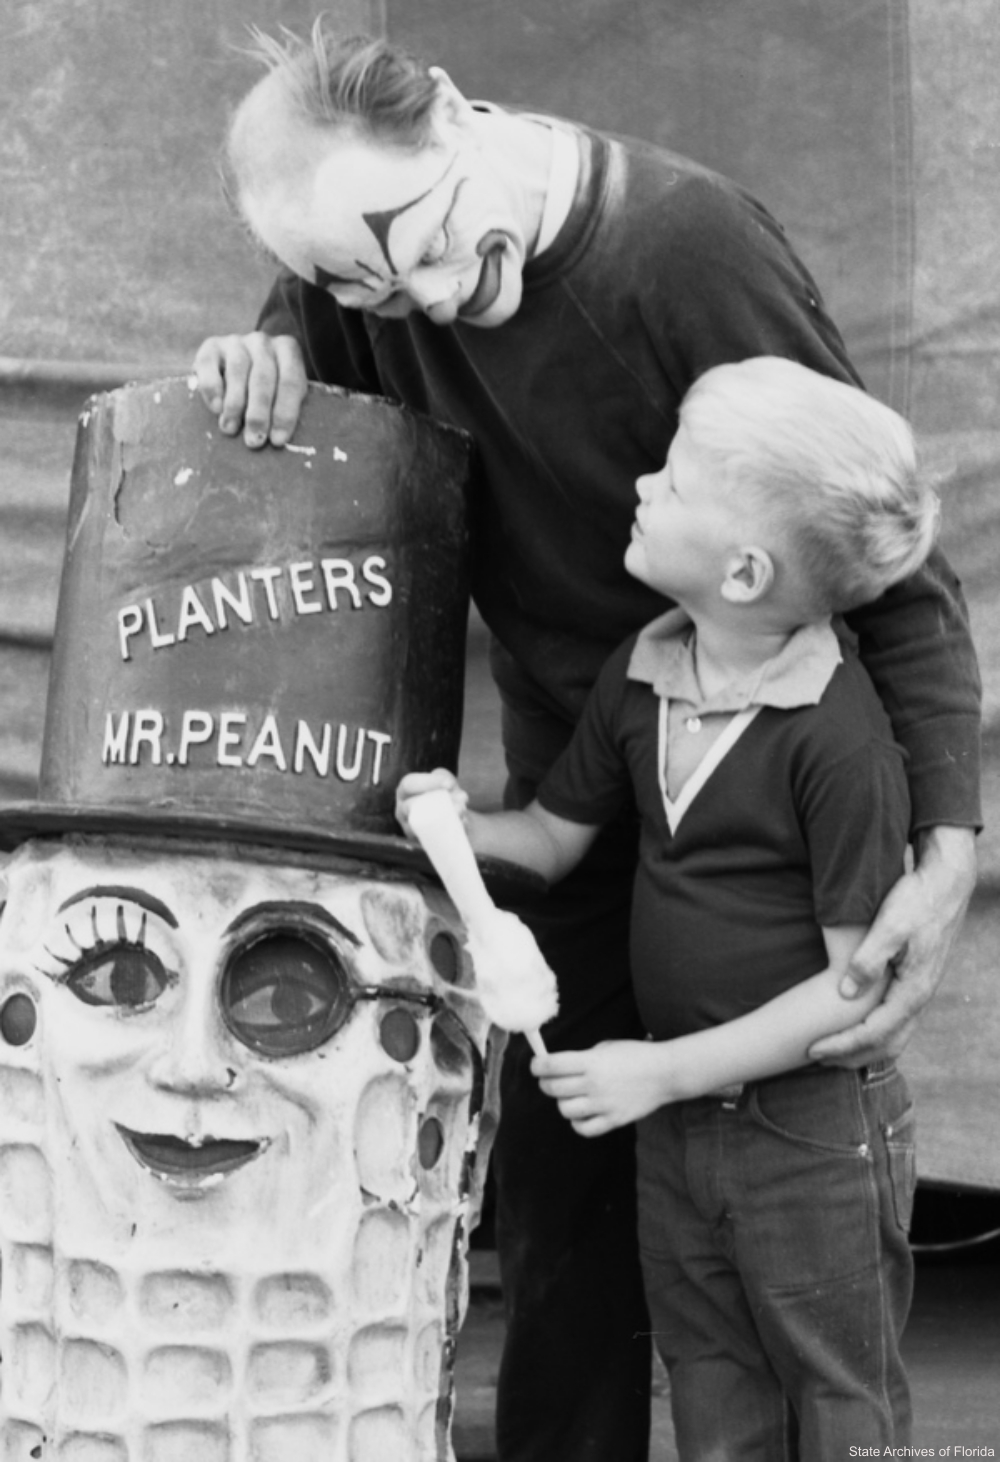 Clown with Boy at Circus Near Mr. Peanut Statue